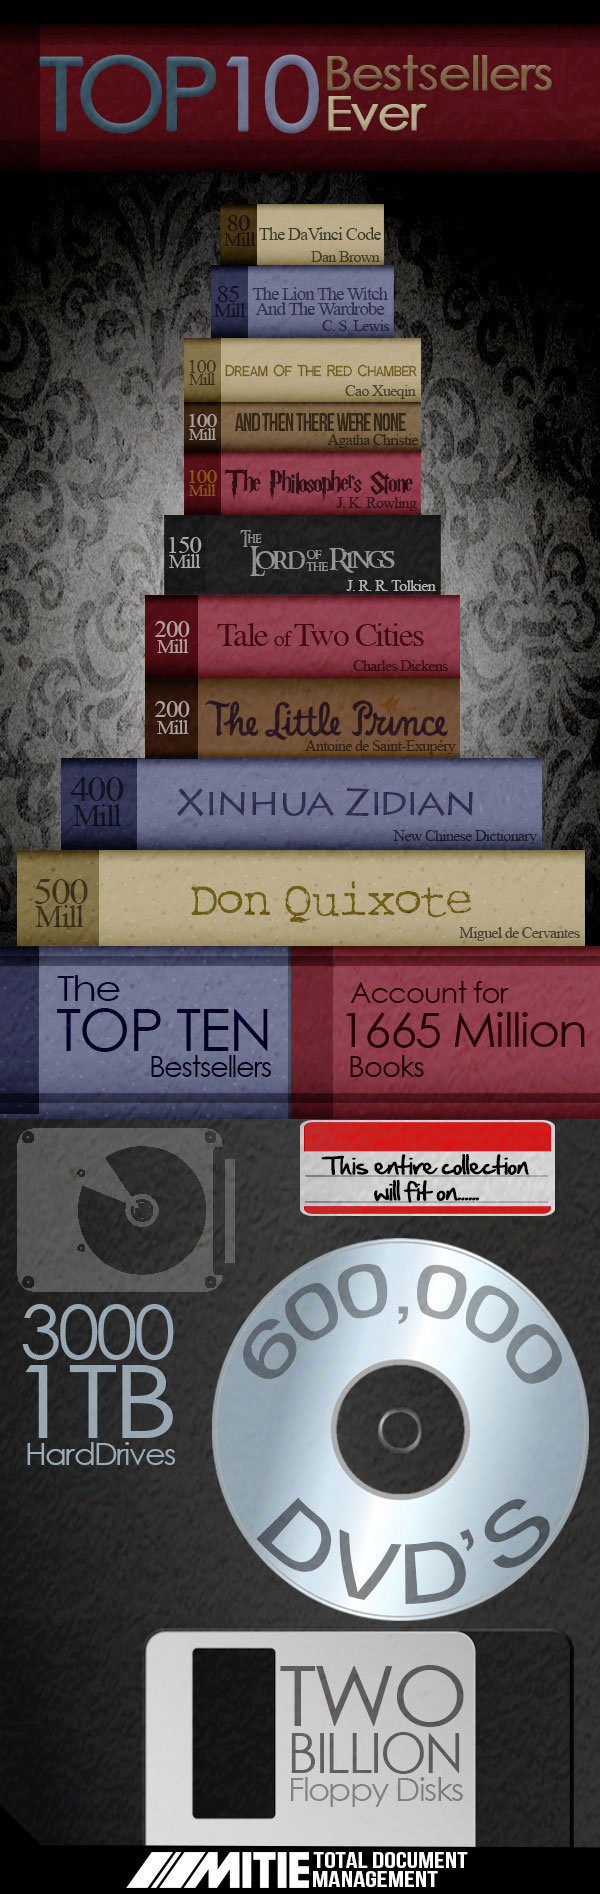 the-top-ten-bestsellers-ever_524014cd7930c